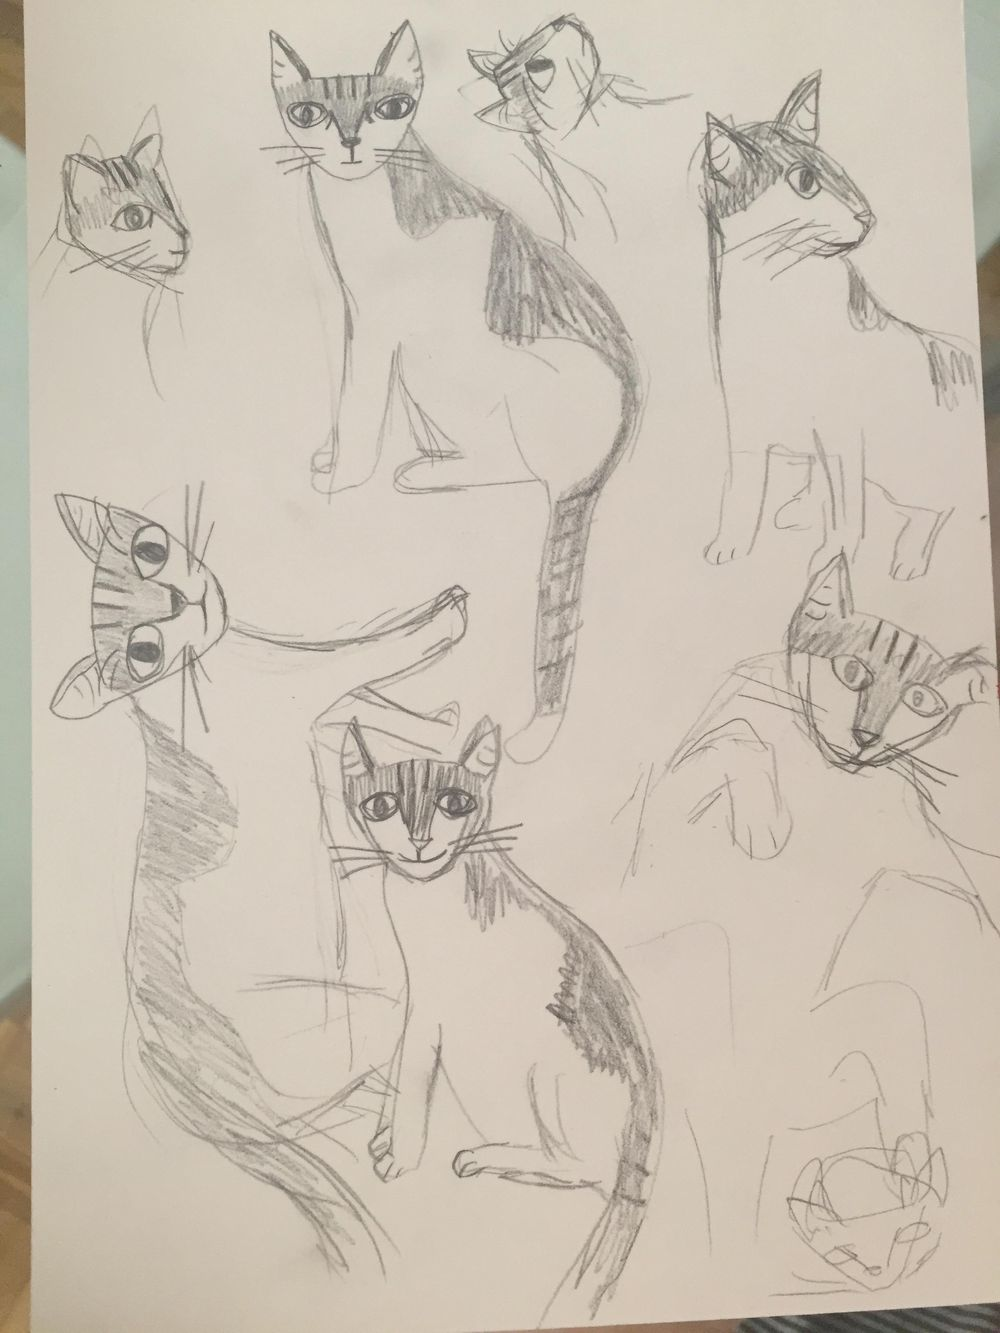 Madame Bovary cat - image 4 - student project